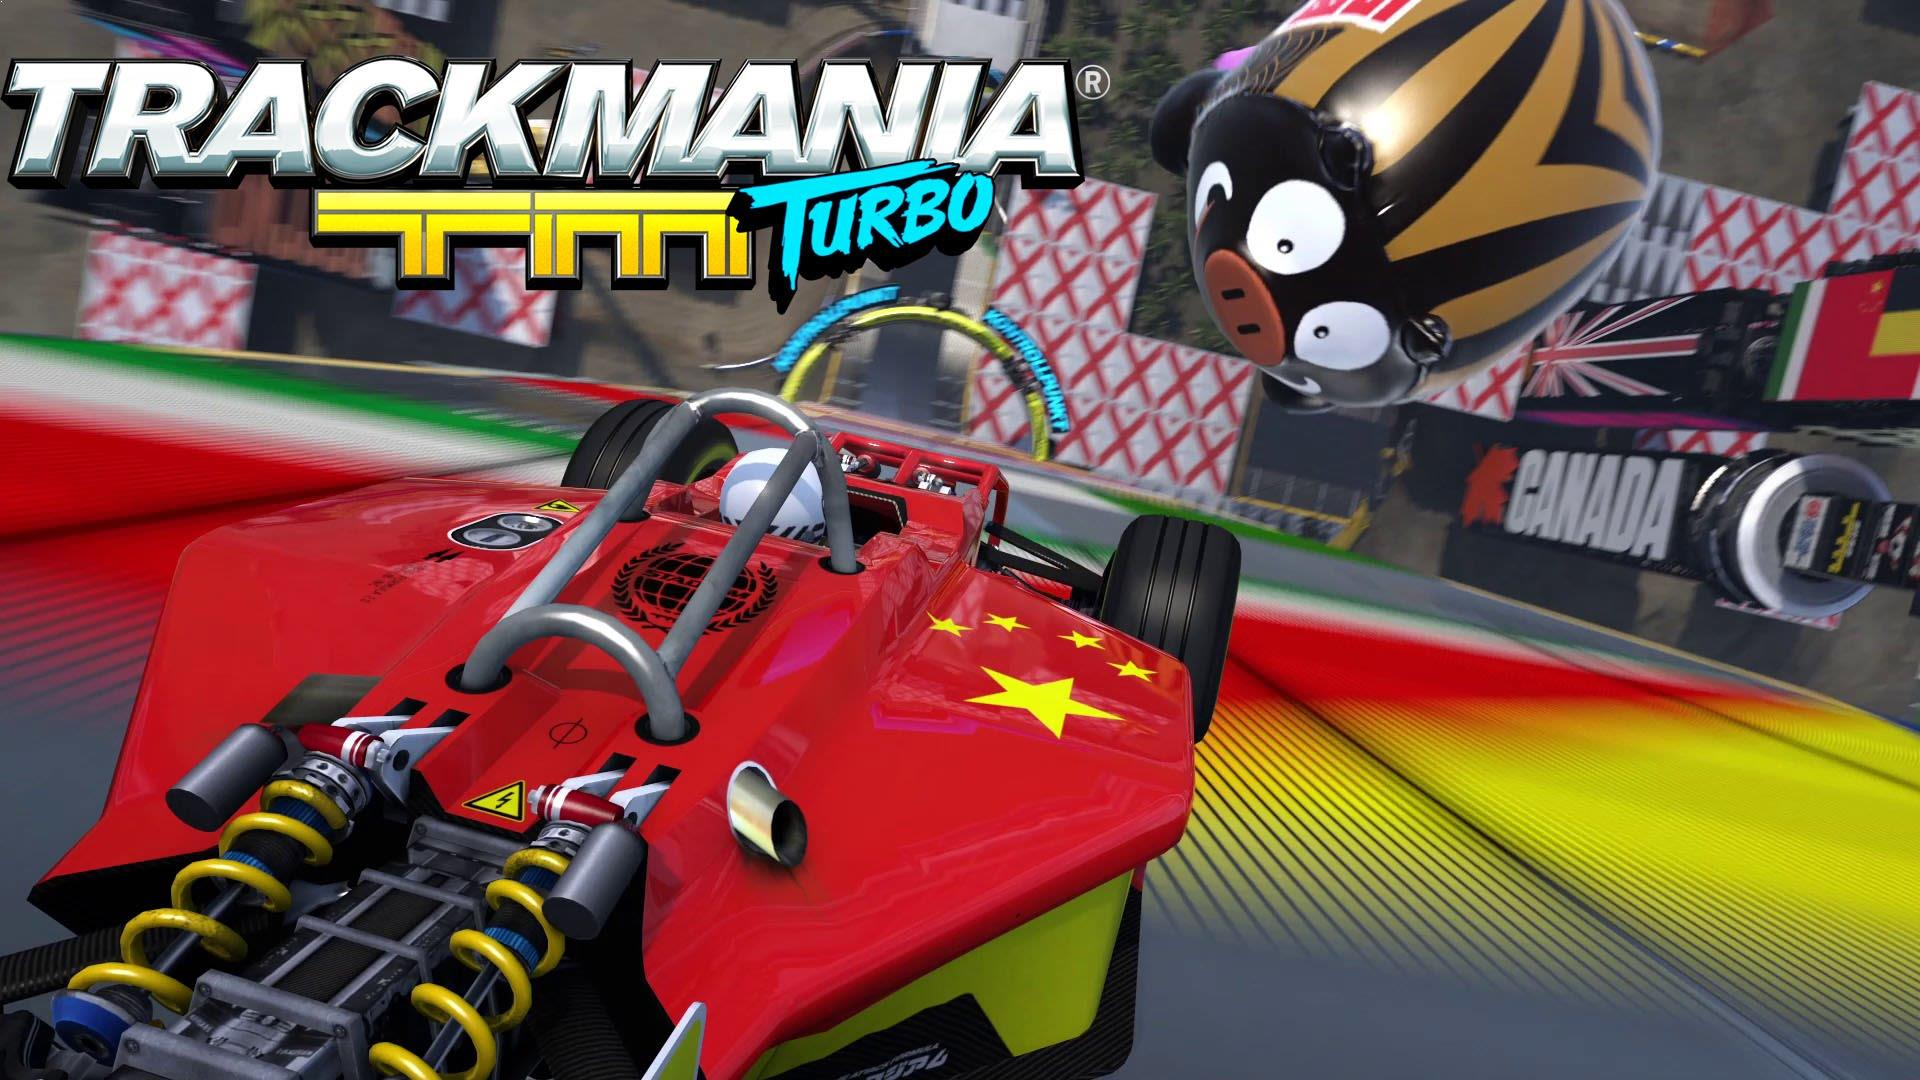 TrackMania Turbo now has VR